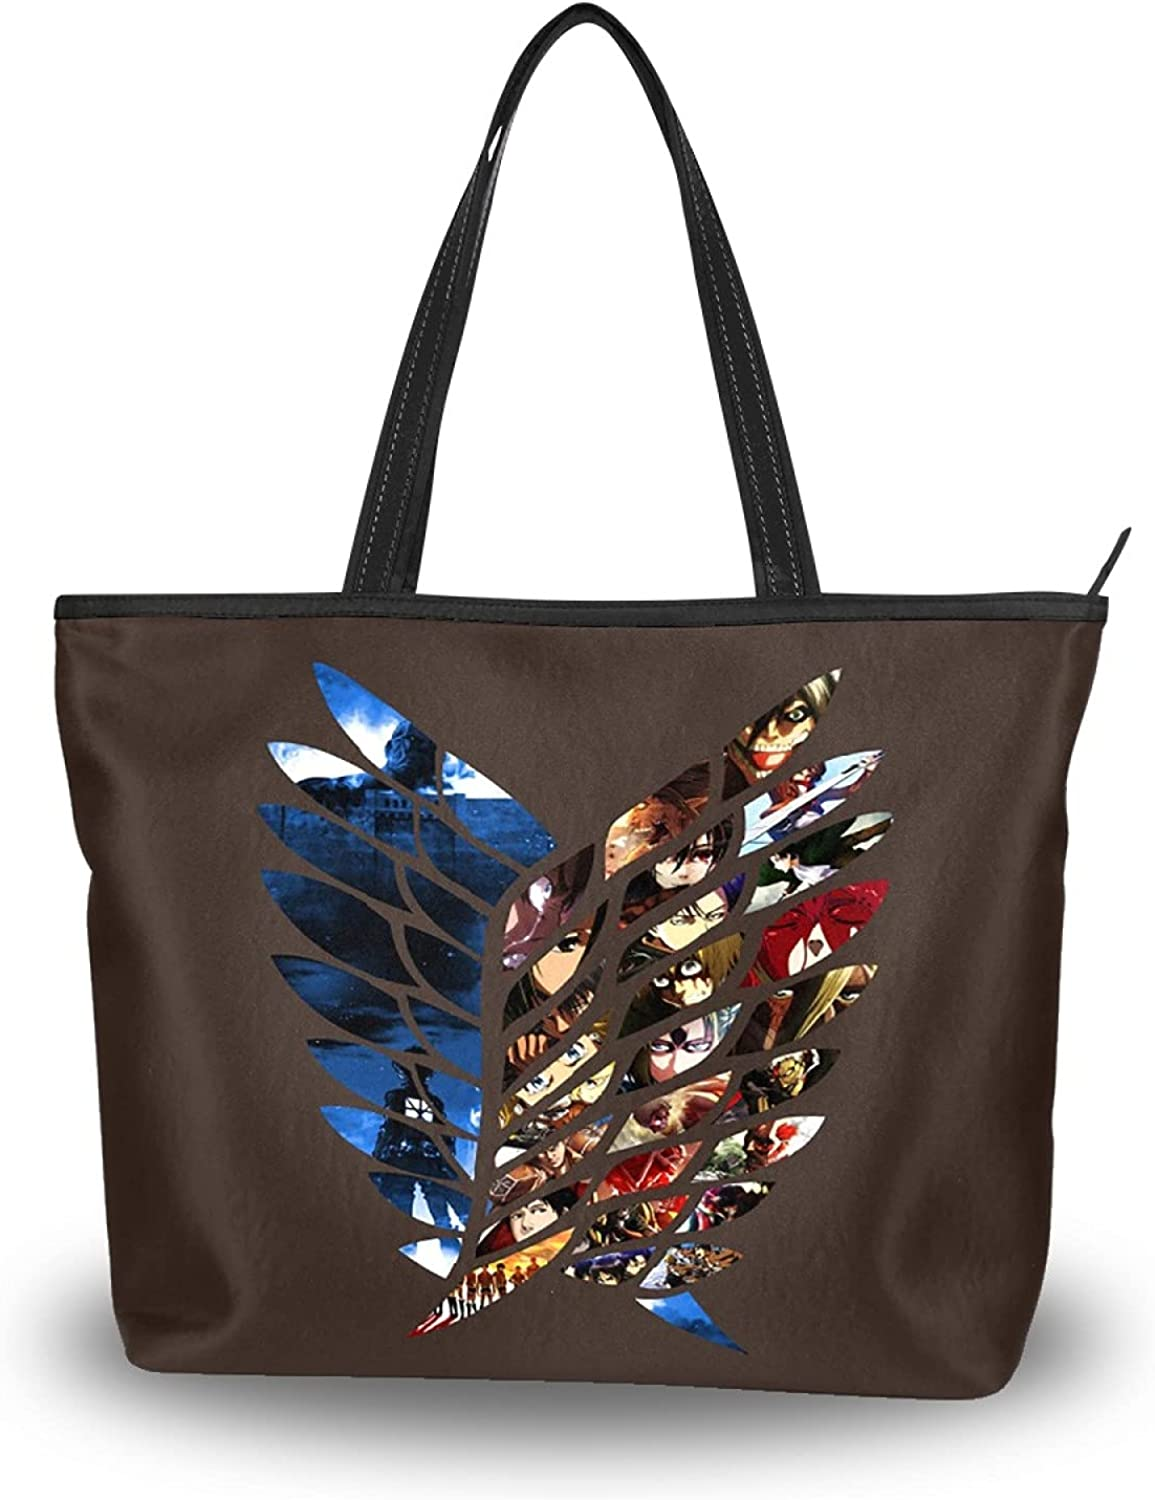 Womens Tote Bag Shoulder Attack Titan Top Satchel Free Shipping New Super sale period limited On Handle